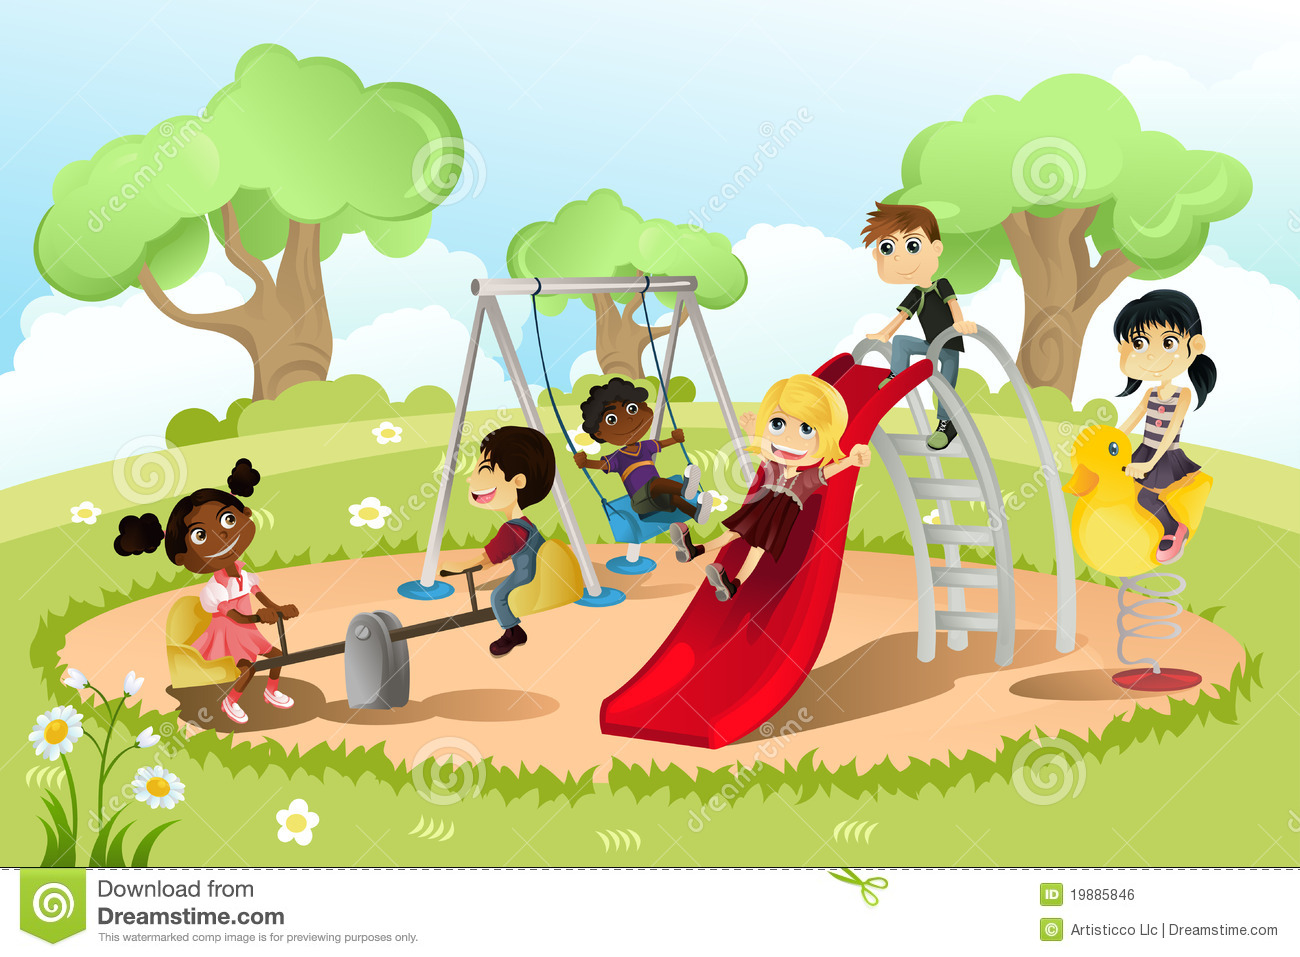 Children In Playground Royalty Free Stock Image   Image  19885846